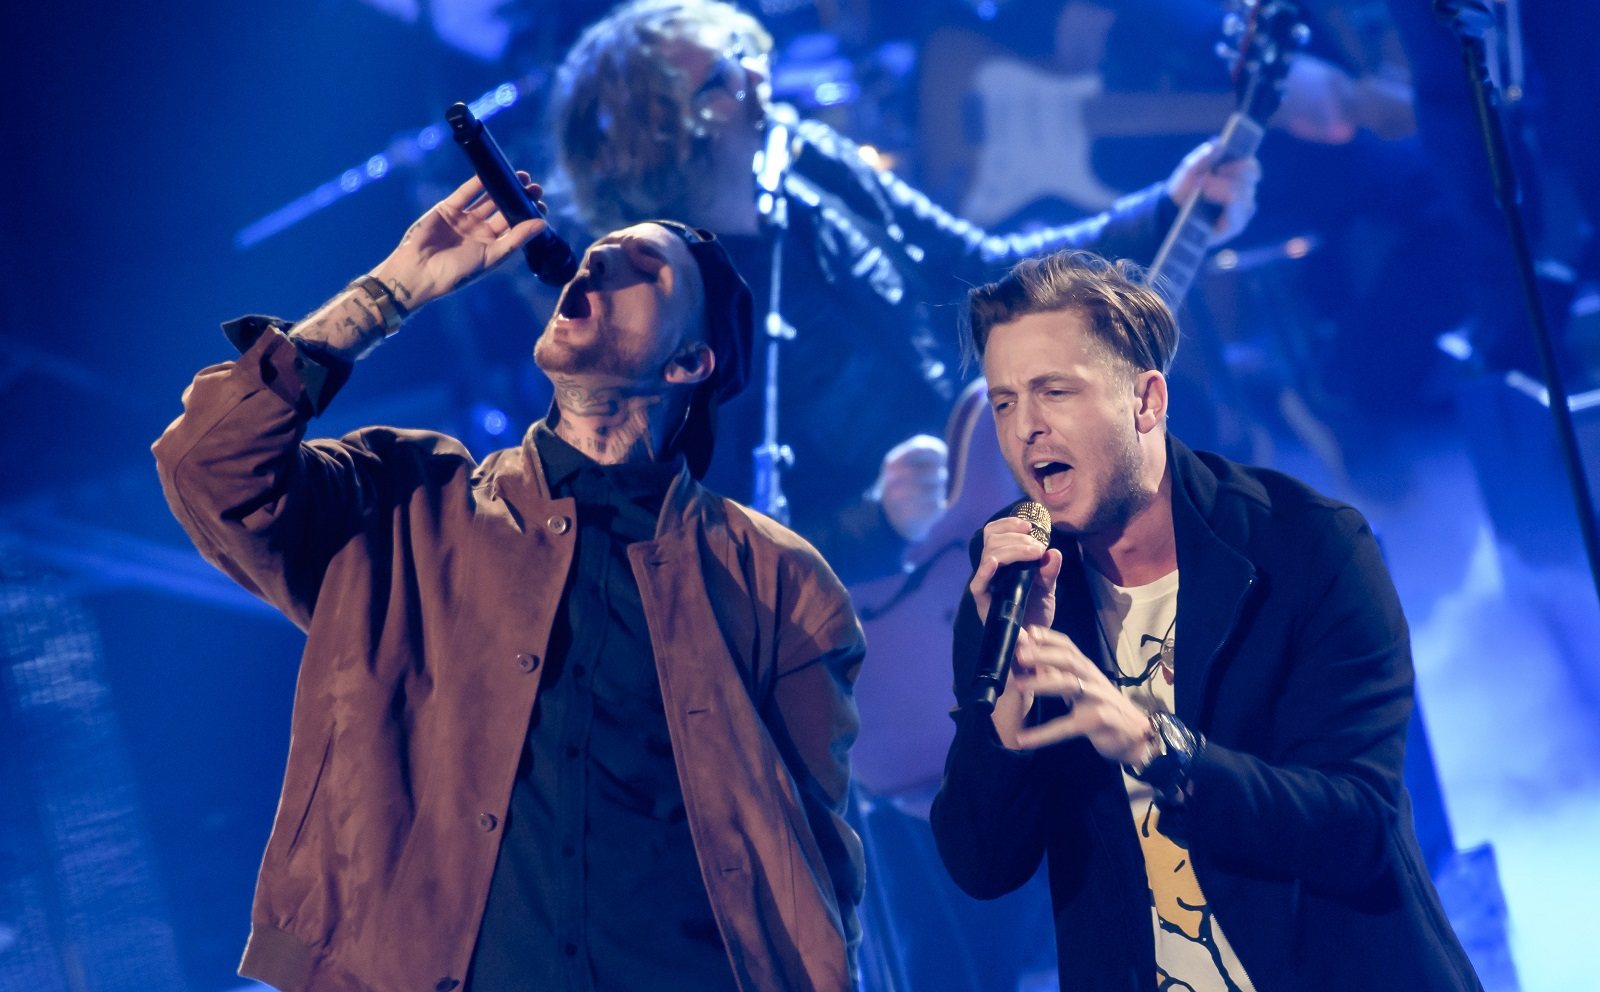 OneRepublic's Darien Lake show is among the concerts in Live Nation's $20 ticket promotion. (Getty Images)